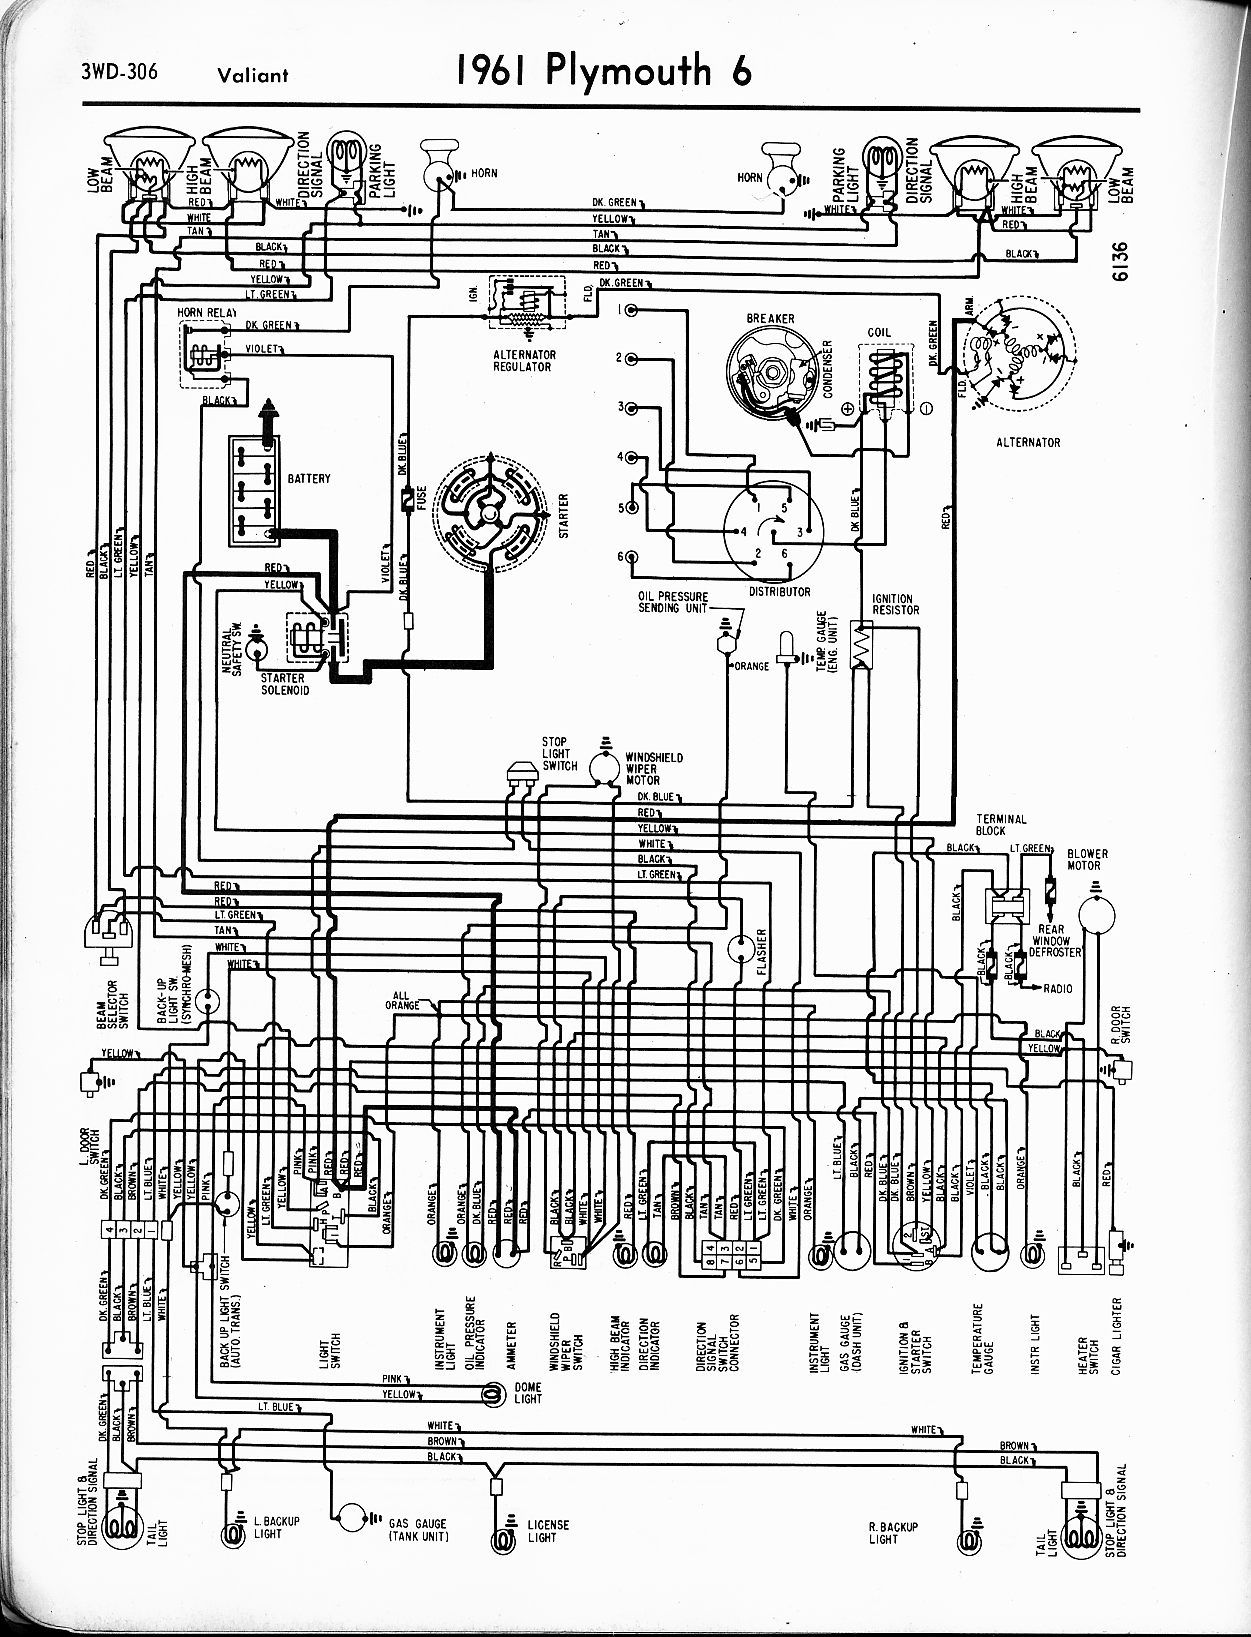 DIAGRAM] 1950 Plymouth Wiring Diagram FULL Version HD Quality Wiring Diagram  - HIERARCHICALSTRUCTURES.NIBERMA.FRhierarchicalstructures.niberma.fr